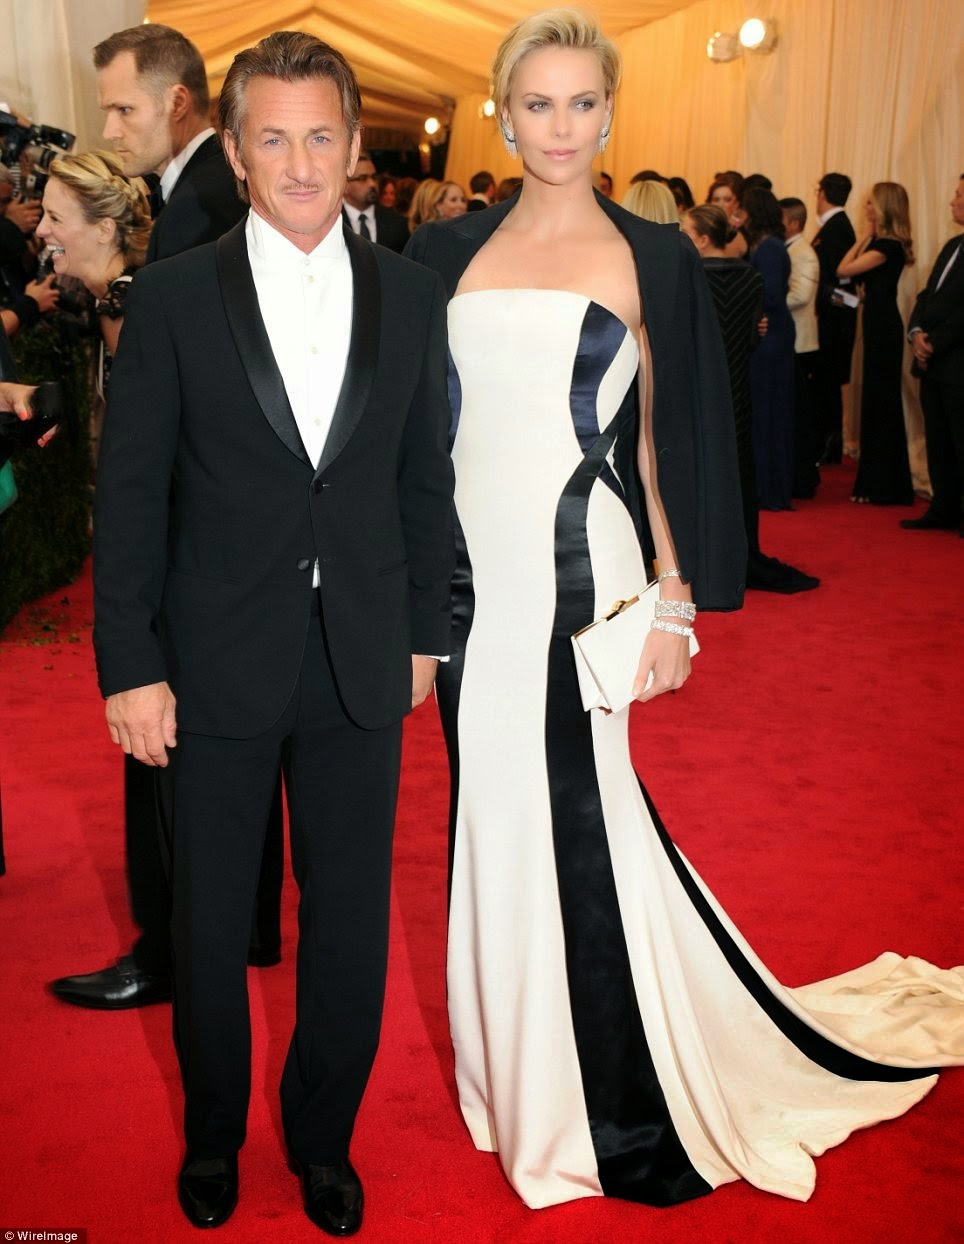 White Tie With Decorations Couple Love At The Met Gala Red Carpet